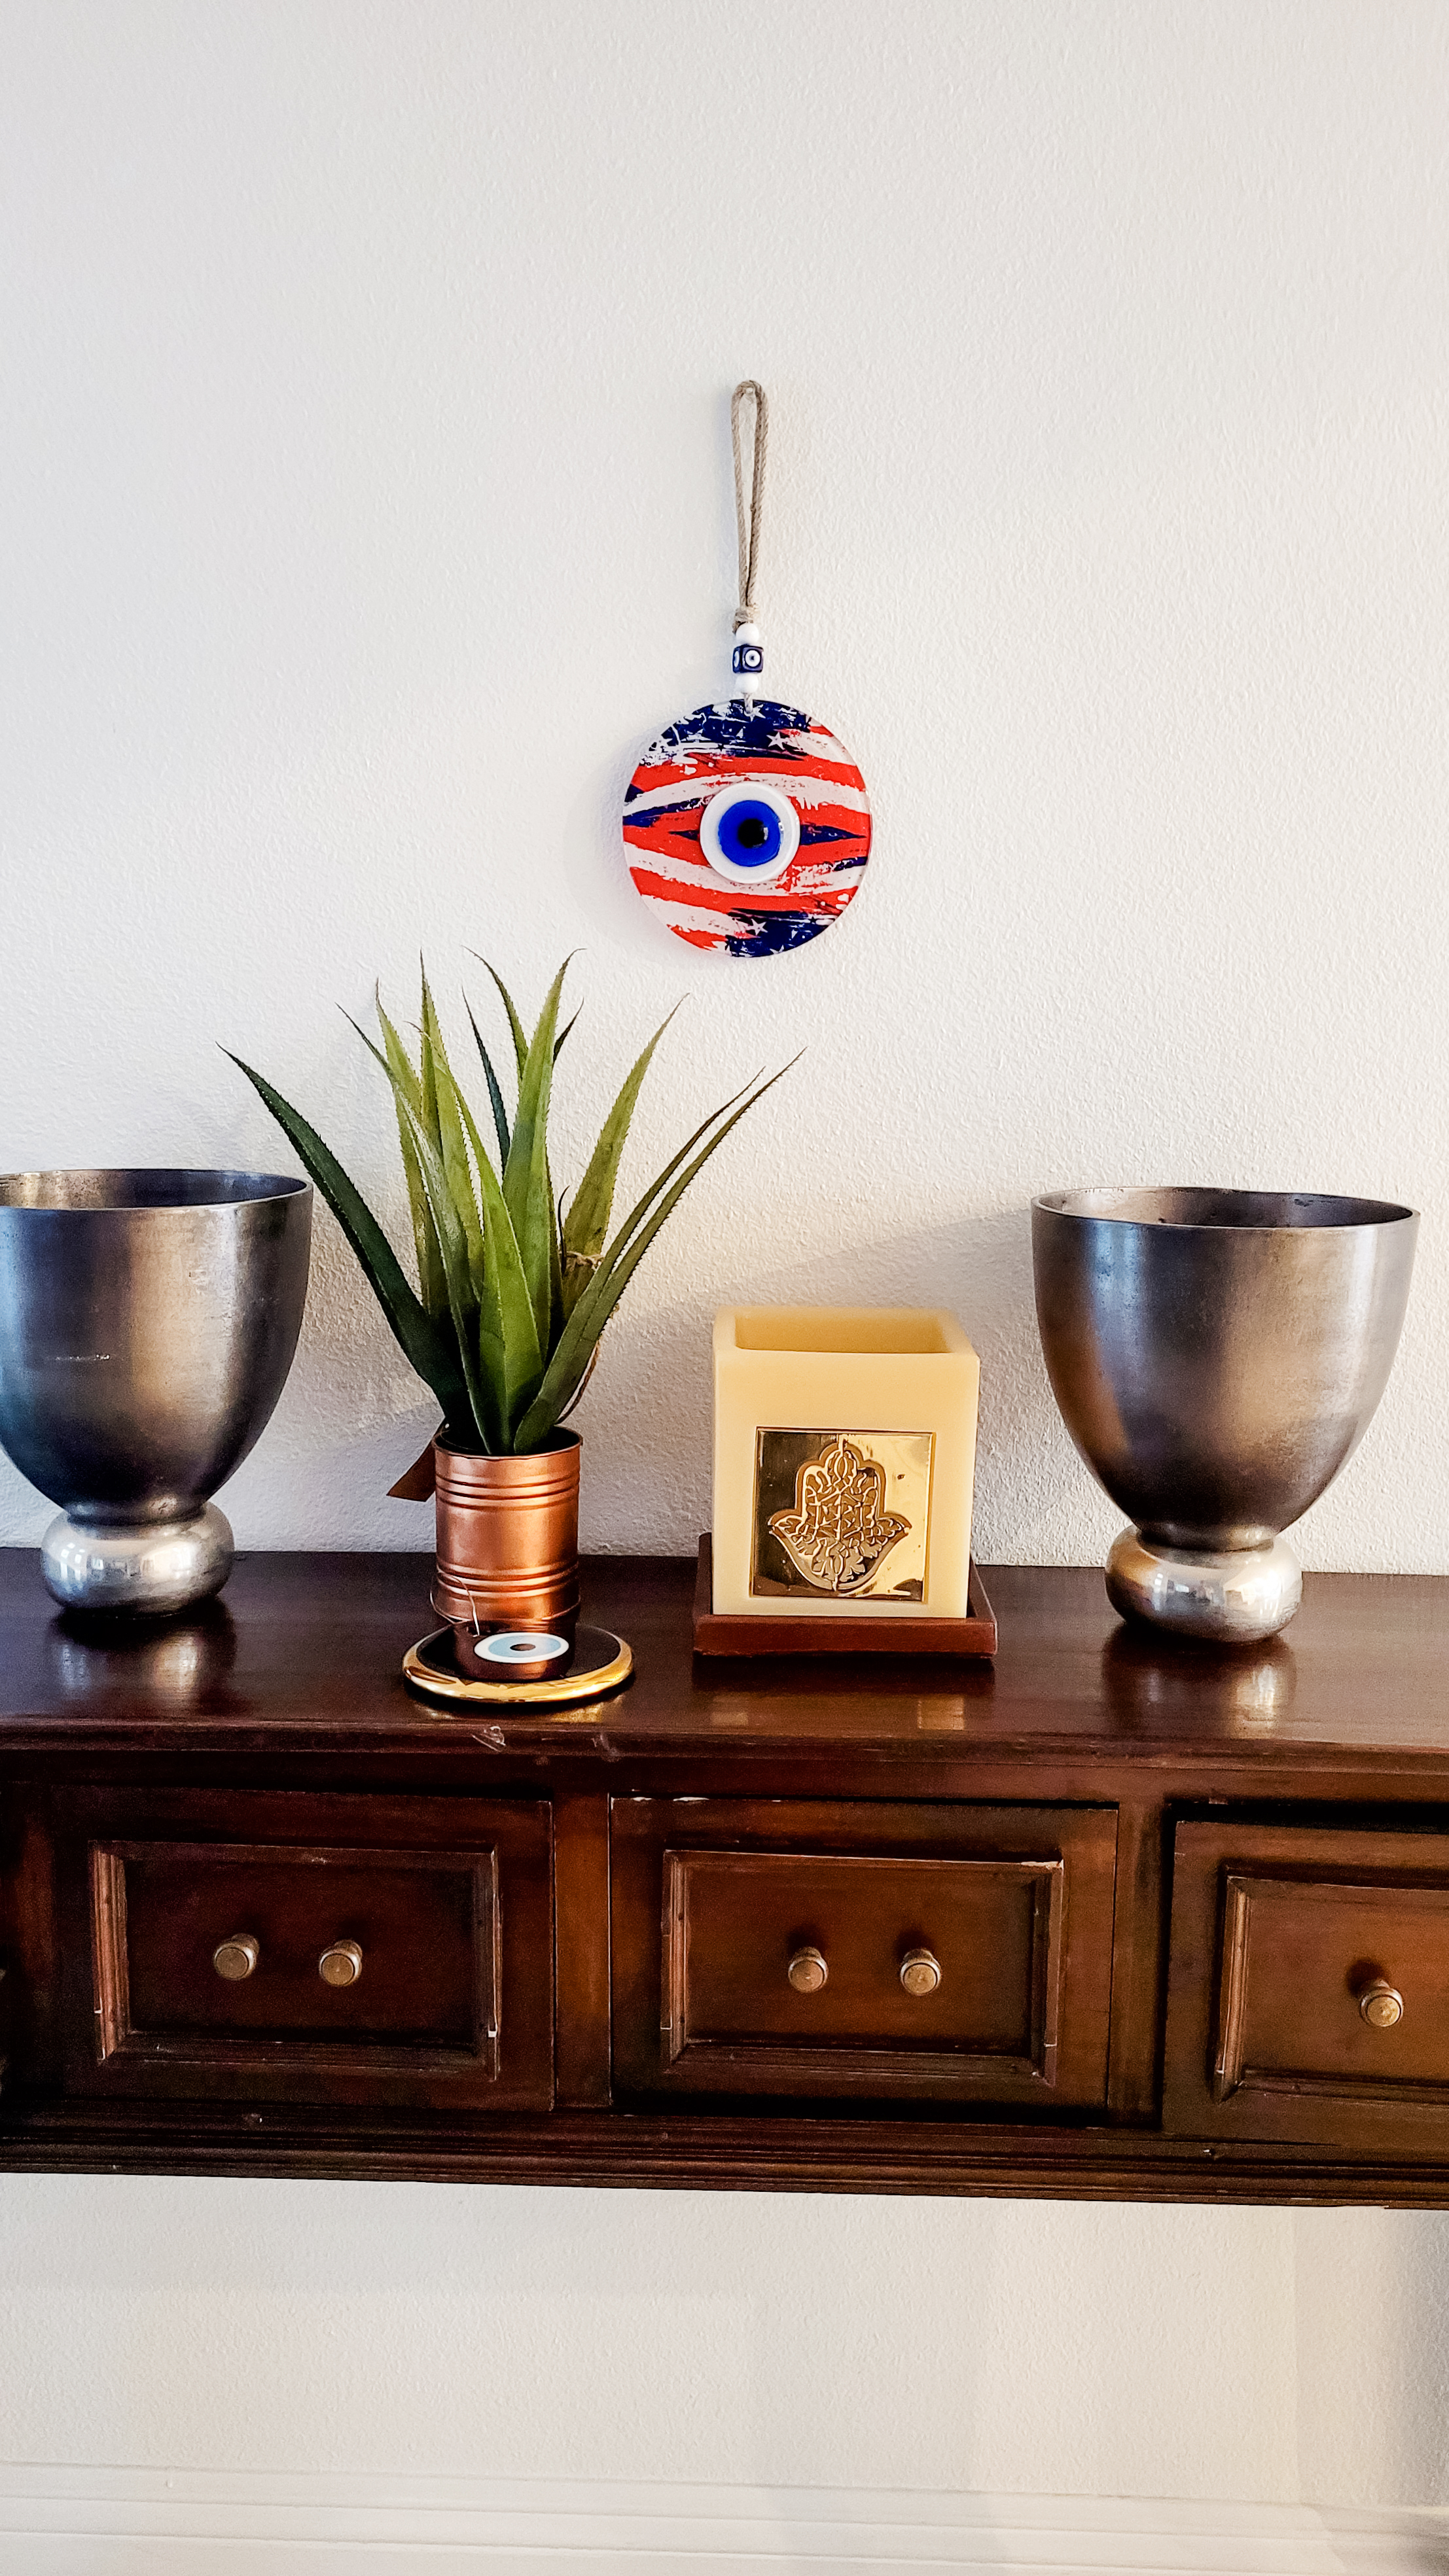 home decor with flag and evil eye